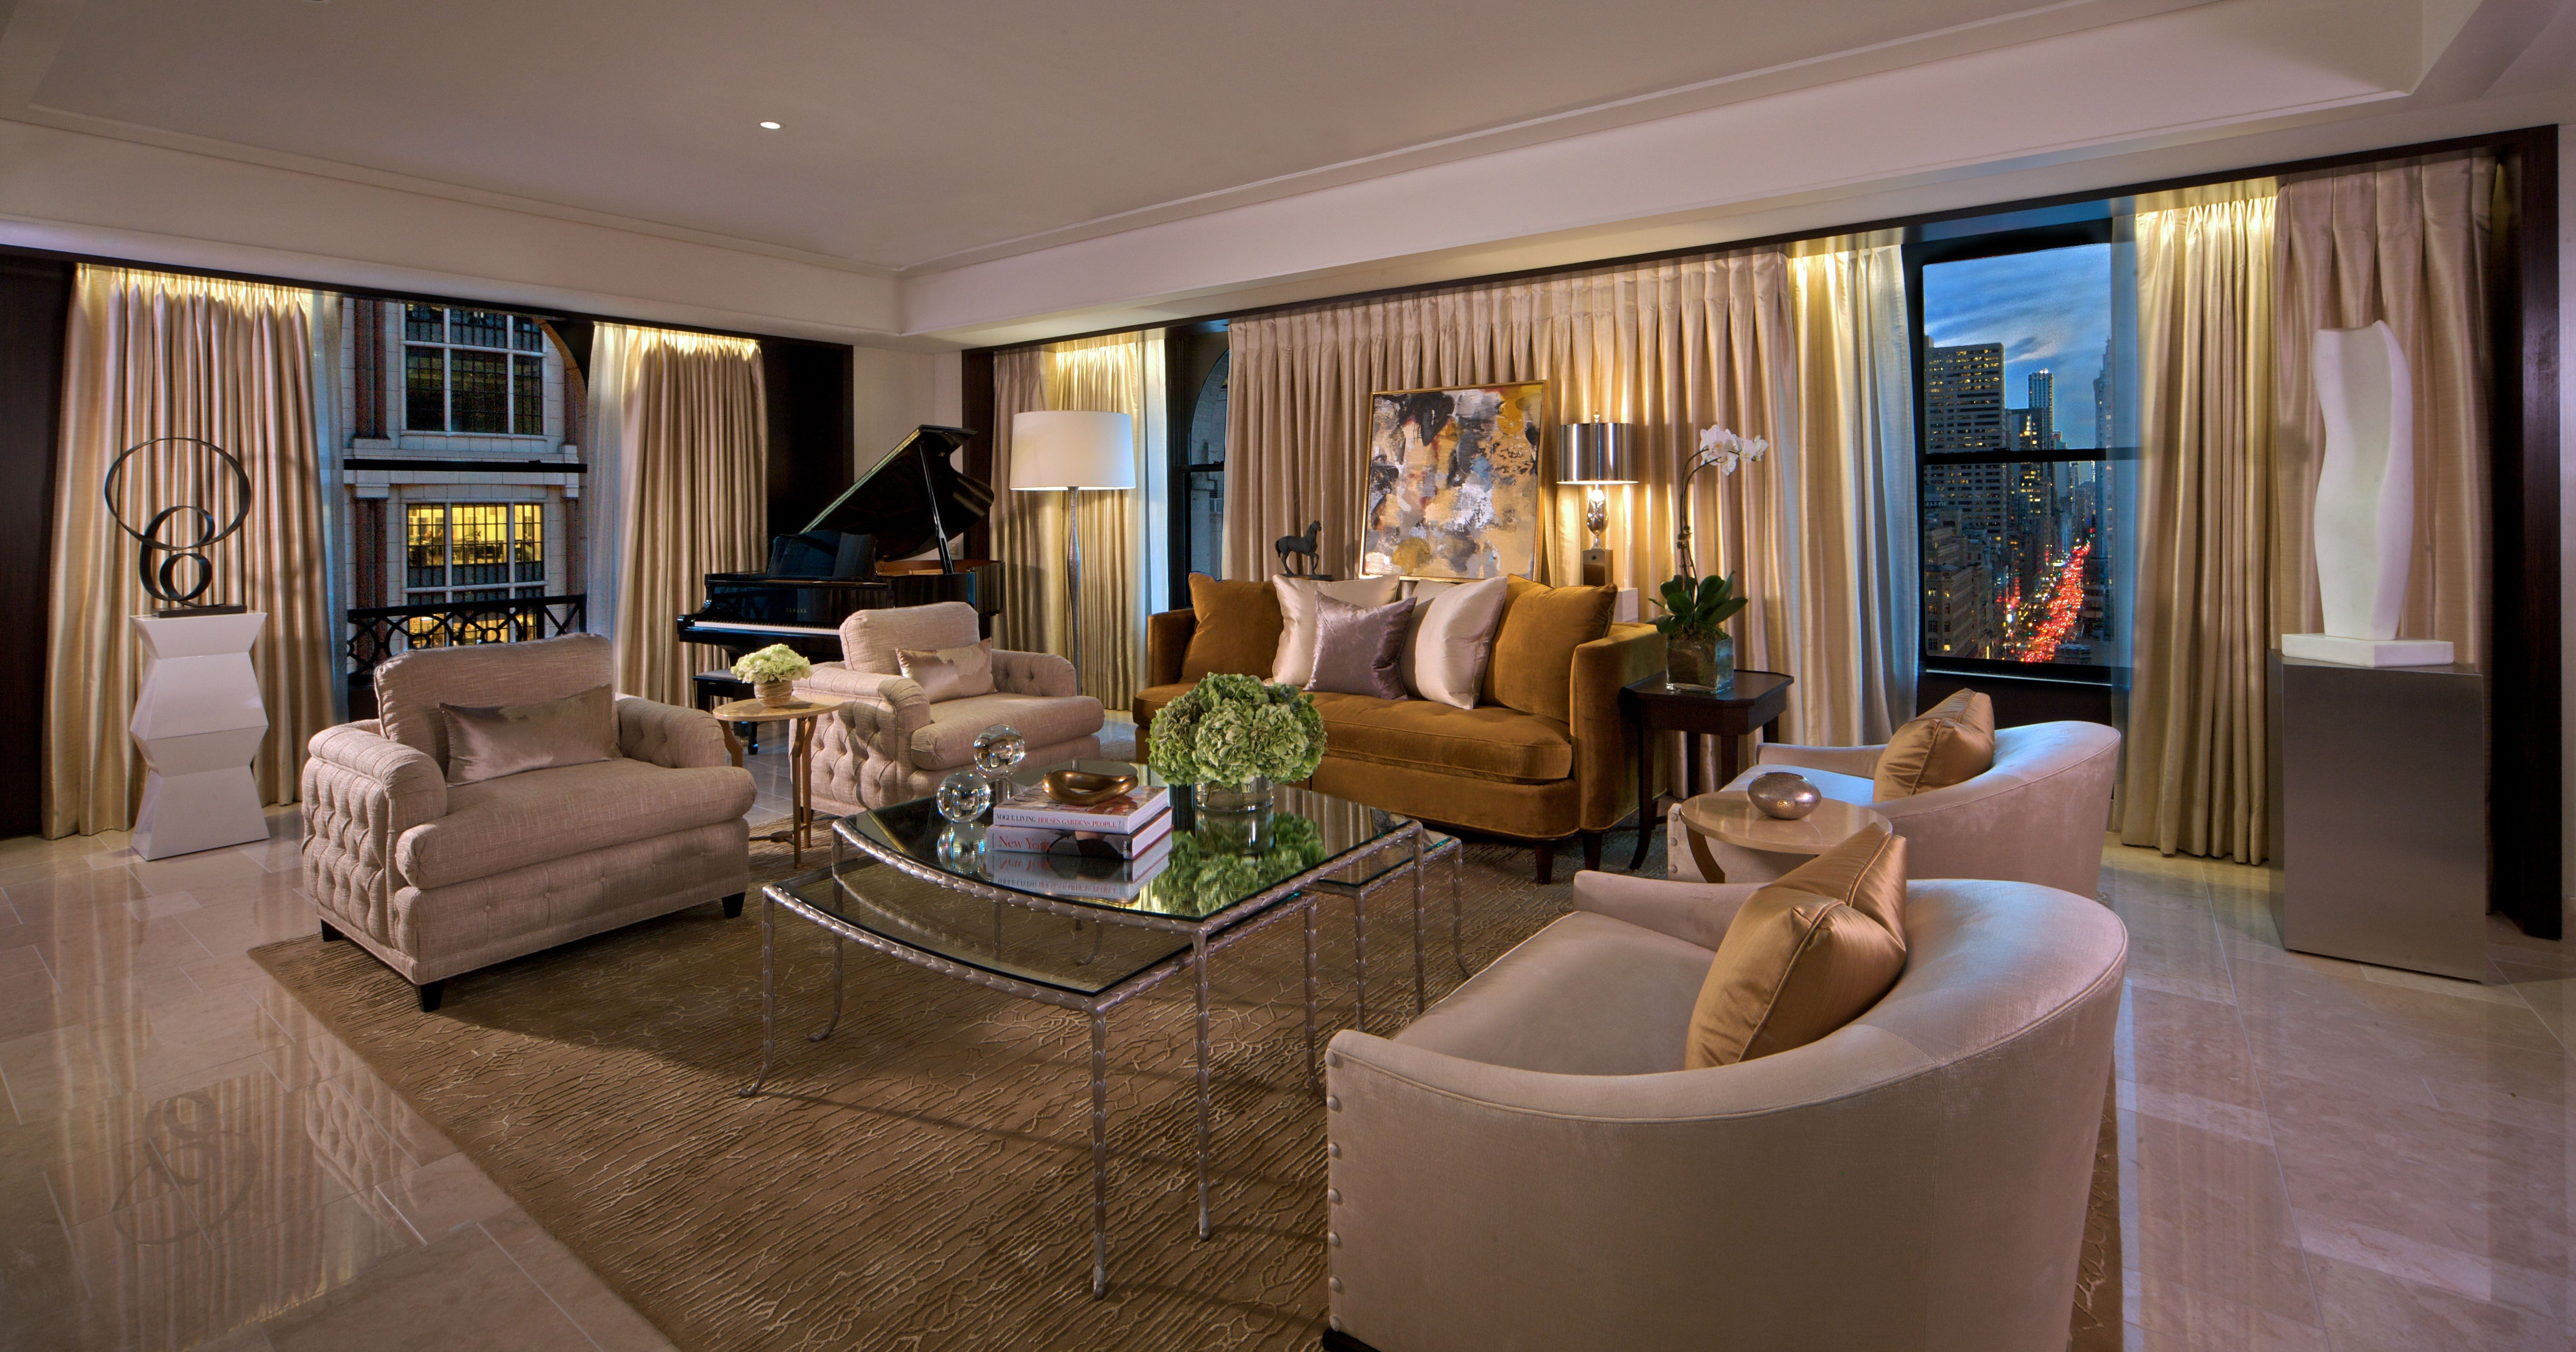 15 of the most expensive hotel suites in new york city for What is the most expensive hotel in new york city